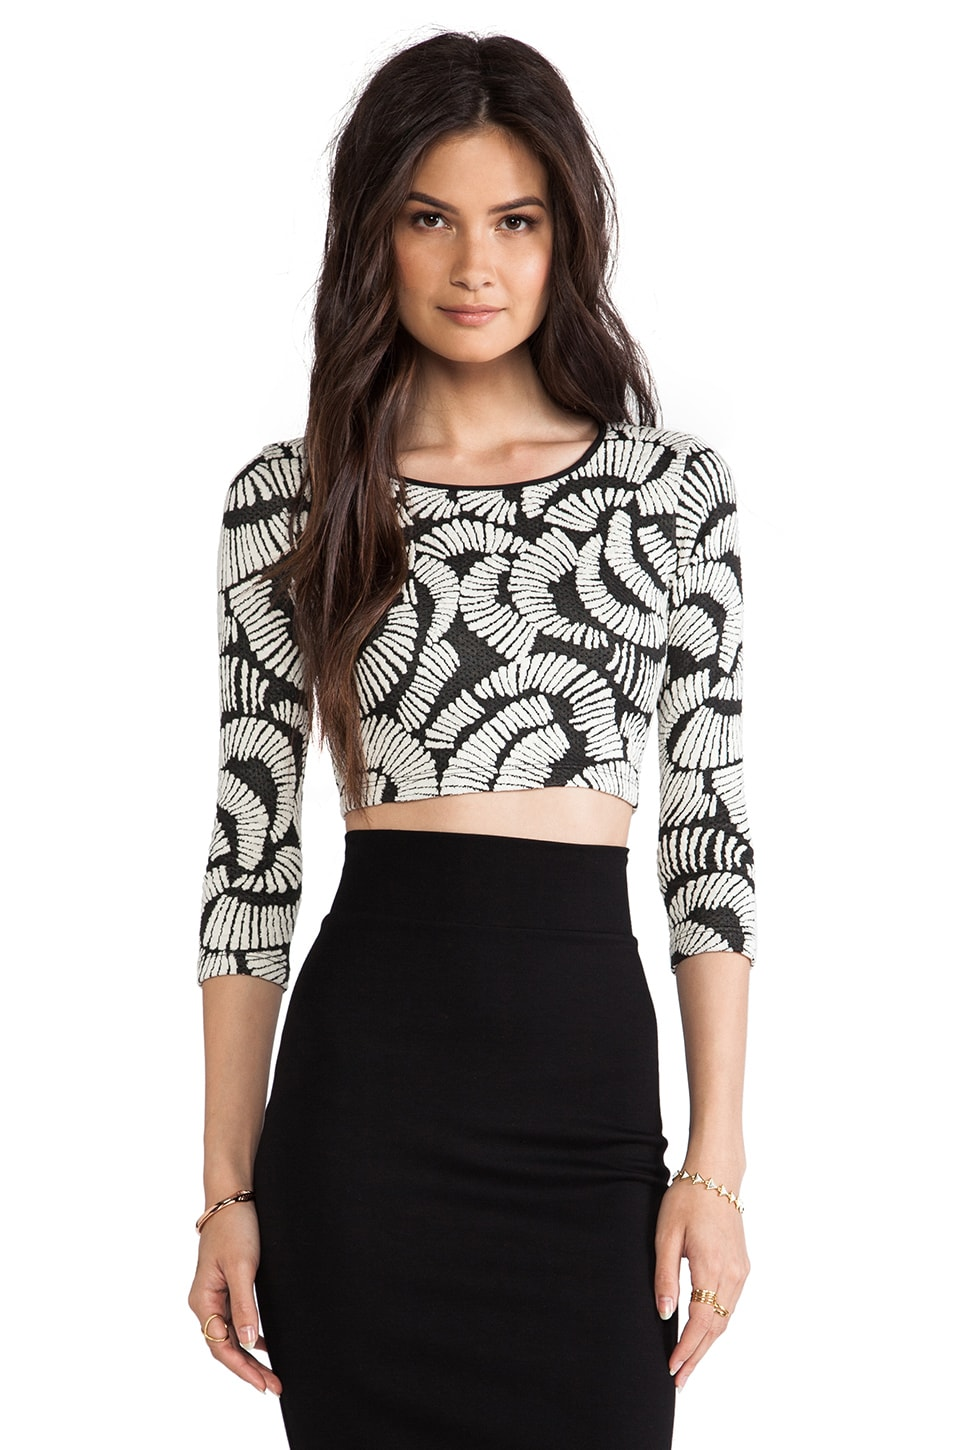 Hunter Bell Kramer Top in Black